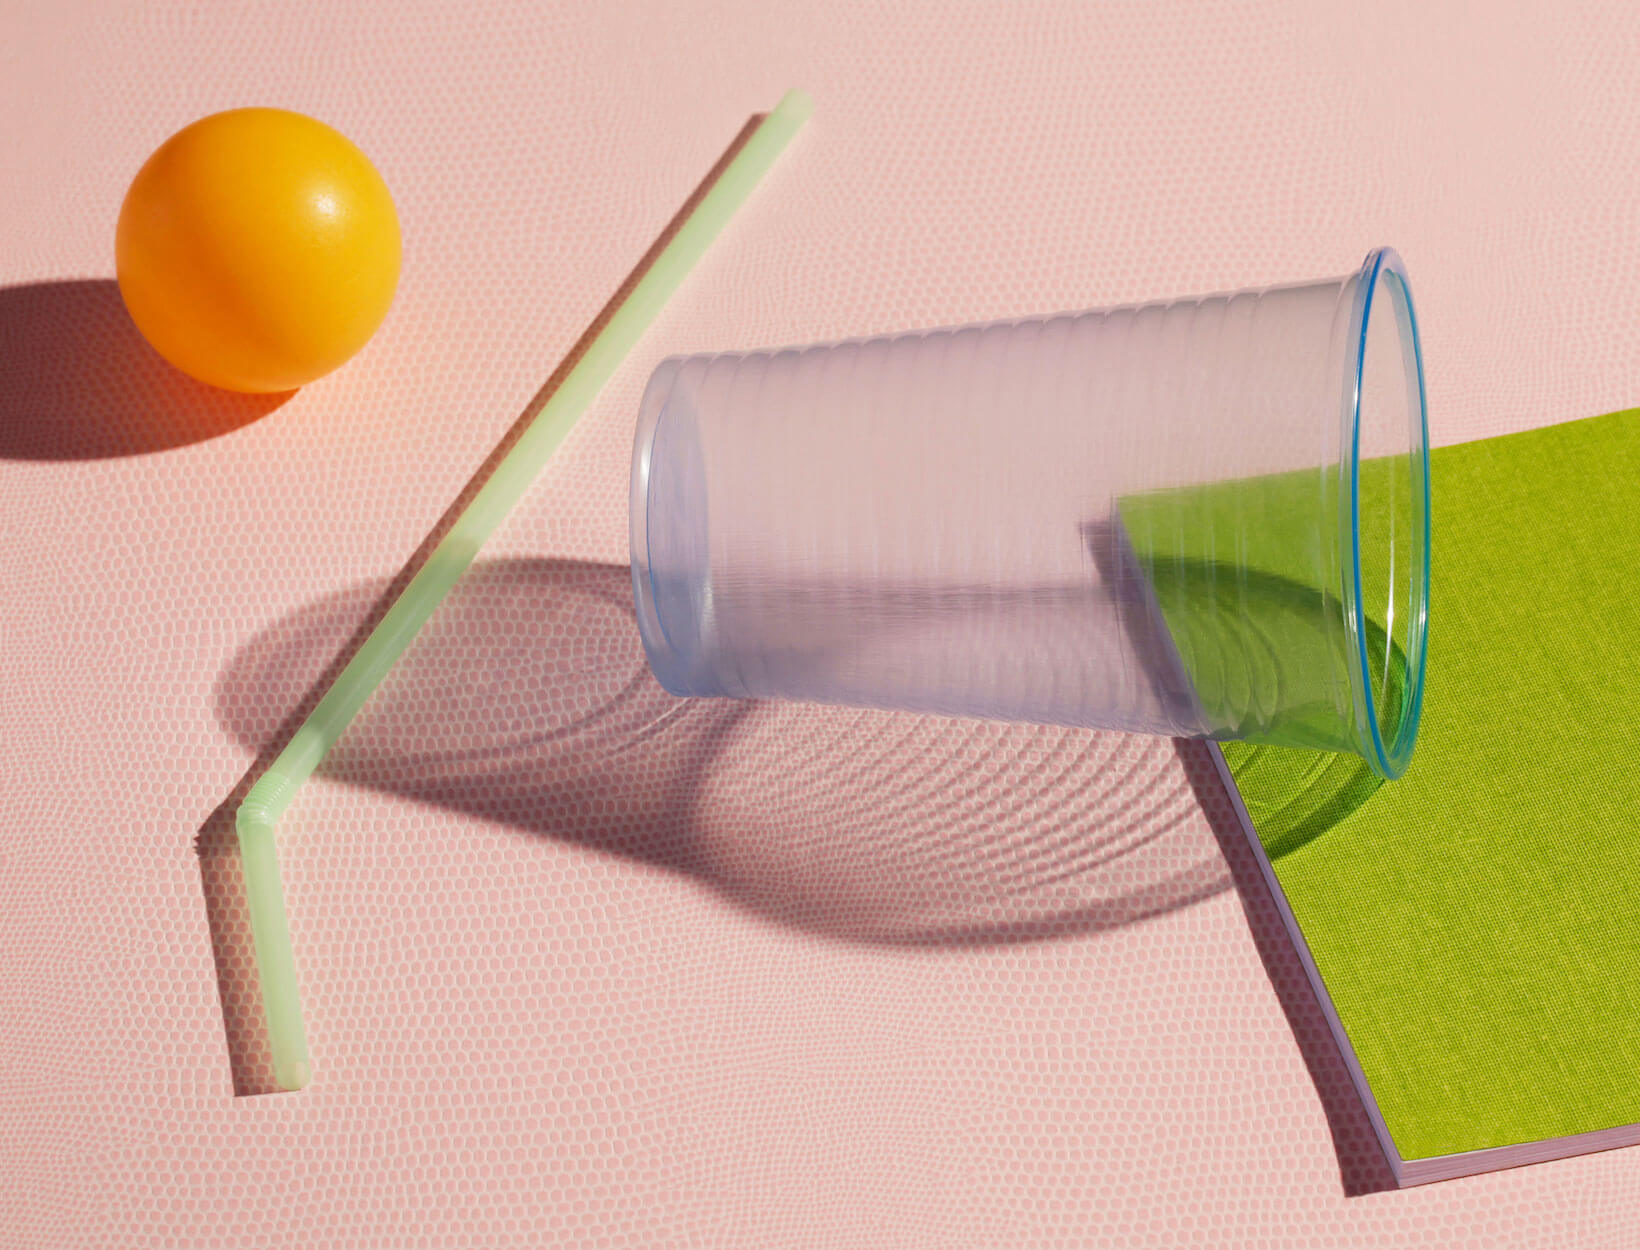 photo of a ping pong ball, plastic straw, and a plastic cup